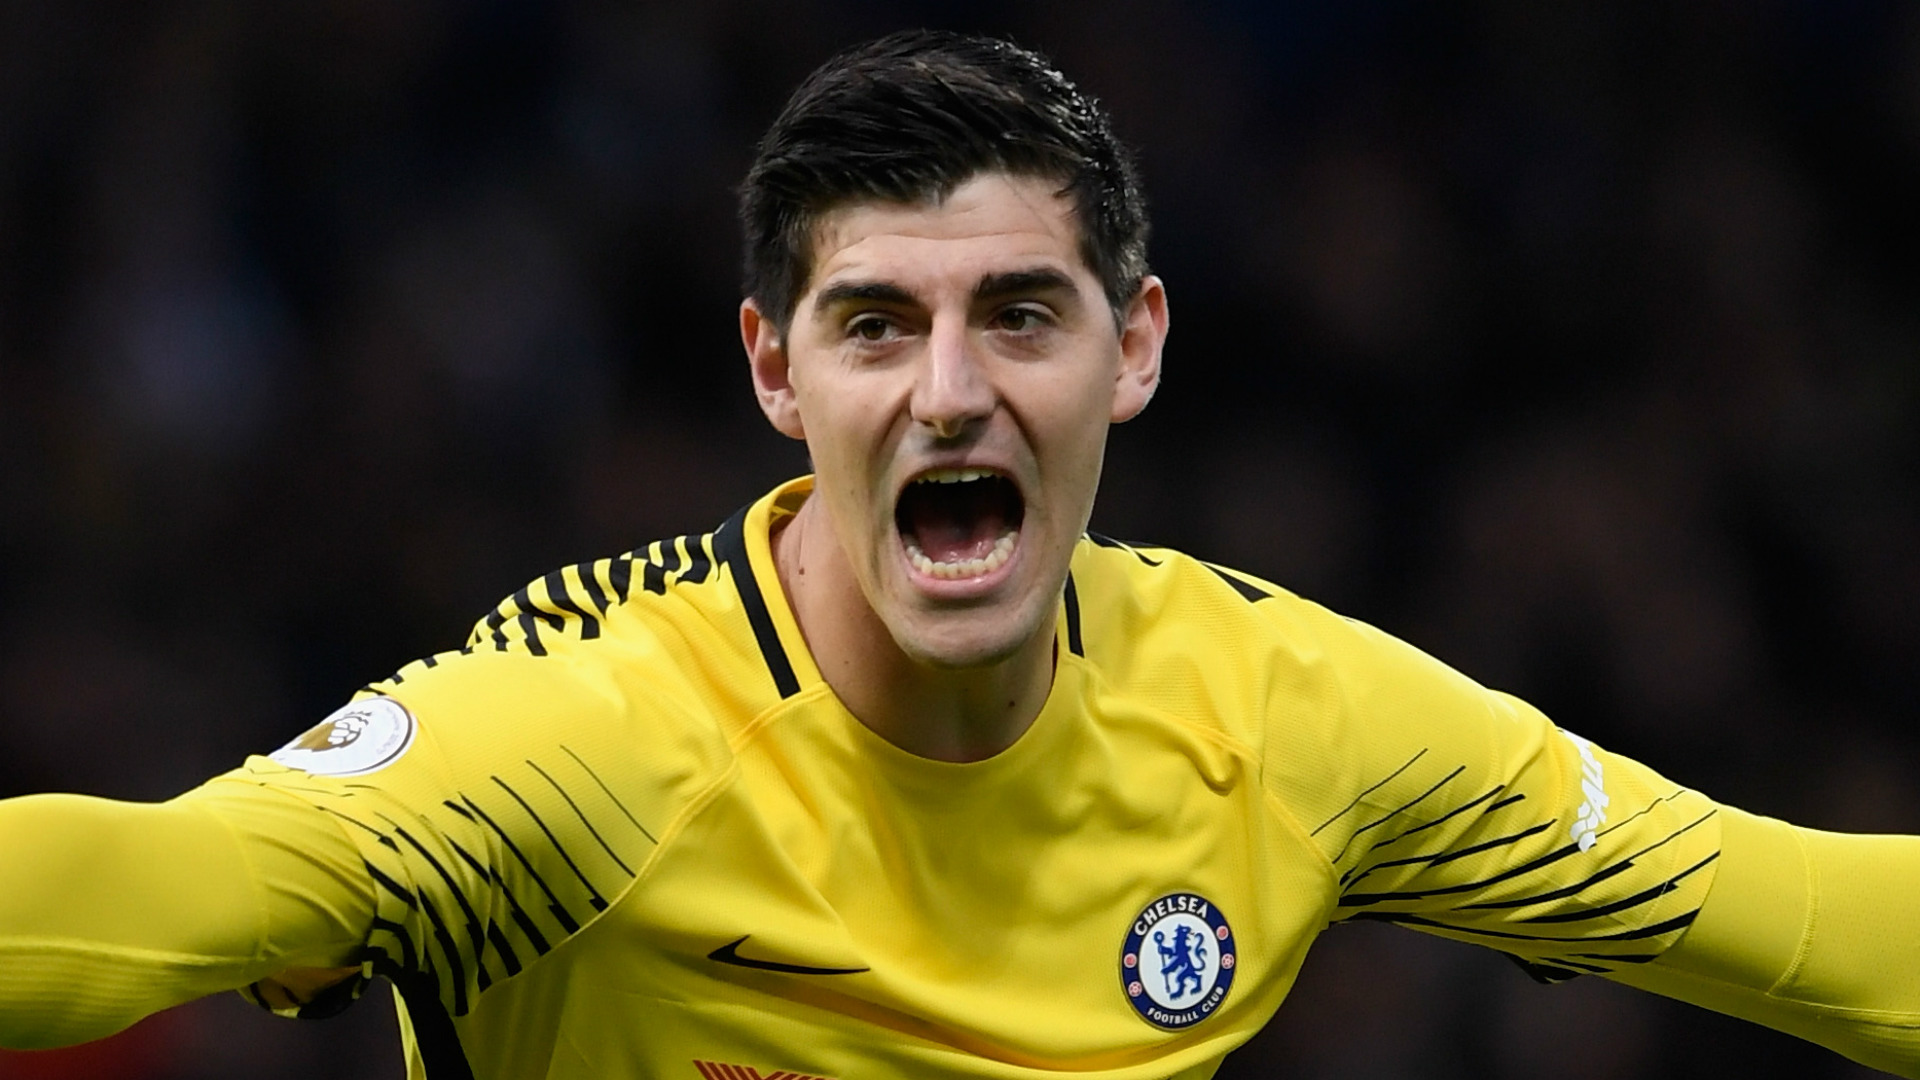 Thibaut Courtois believes he will sign new Chelsea contract before season ends